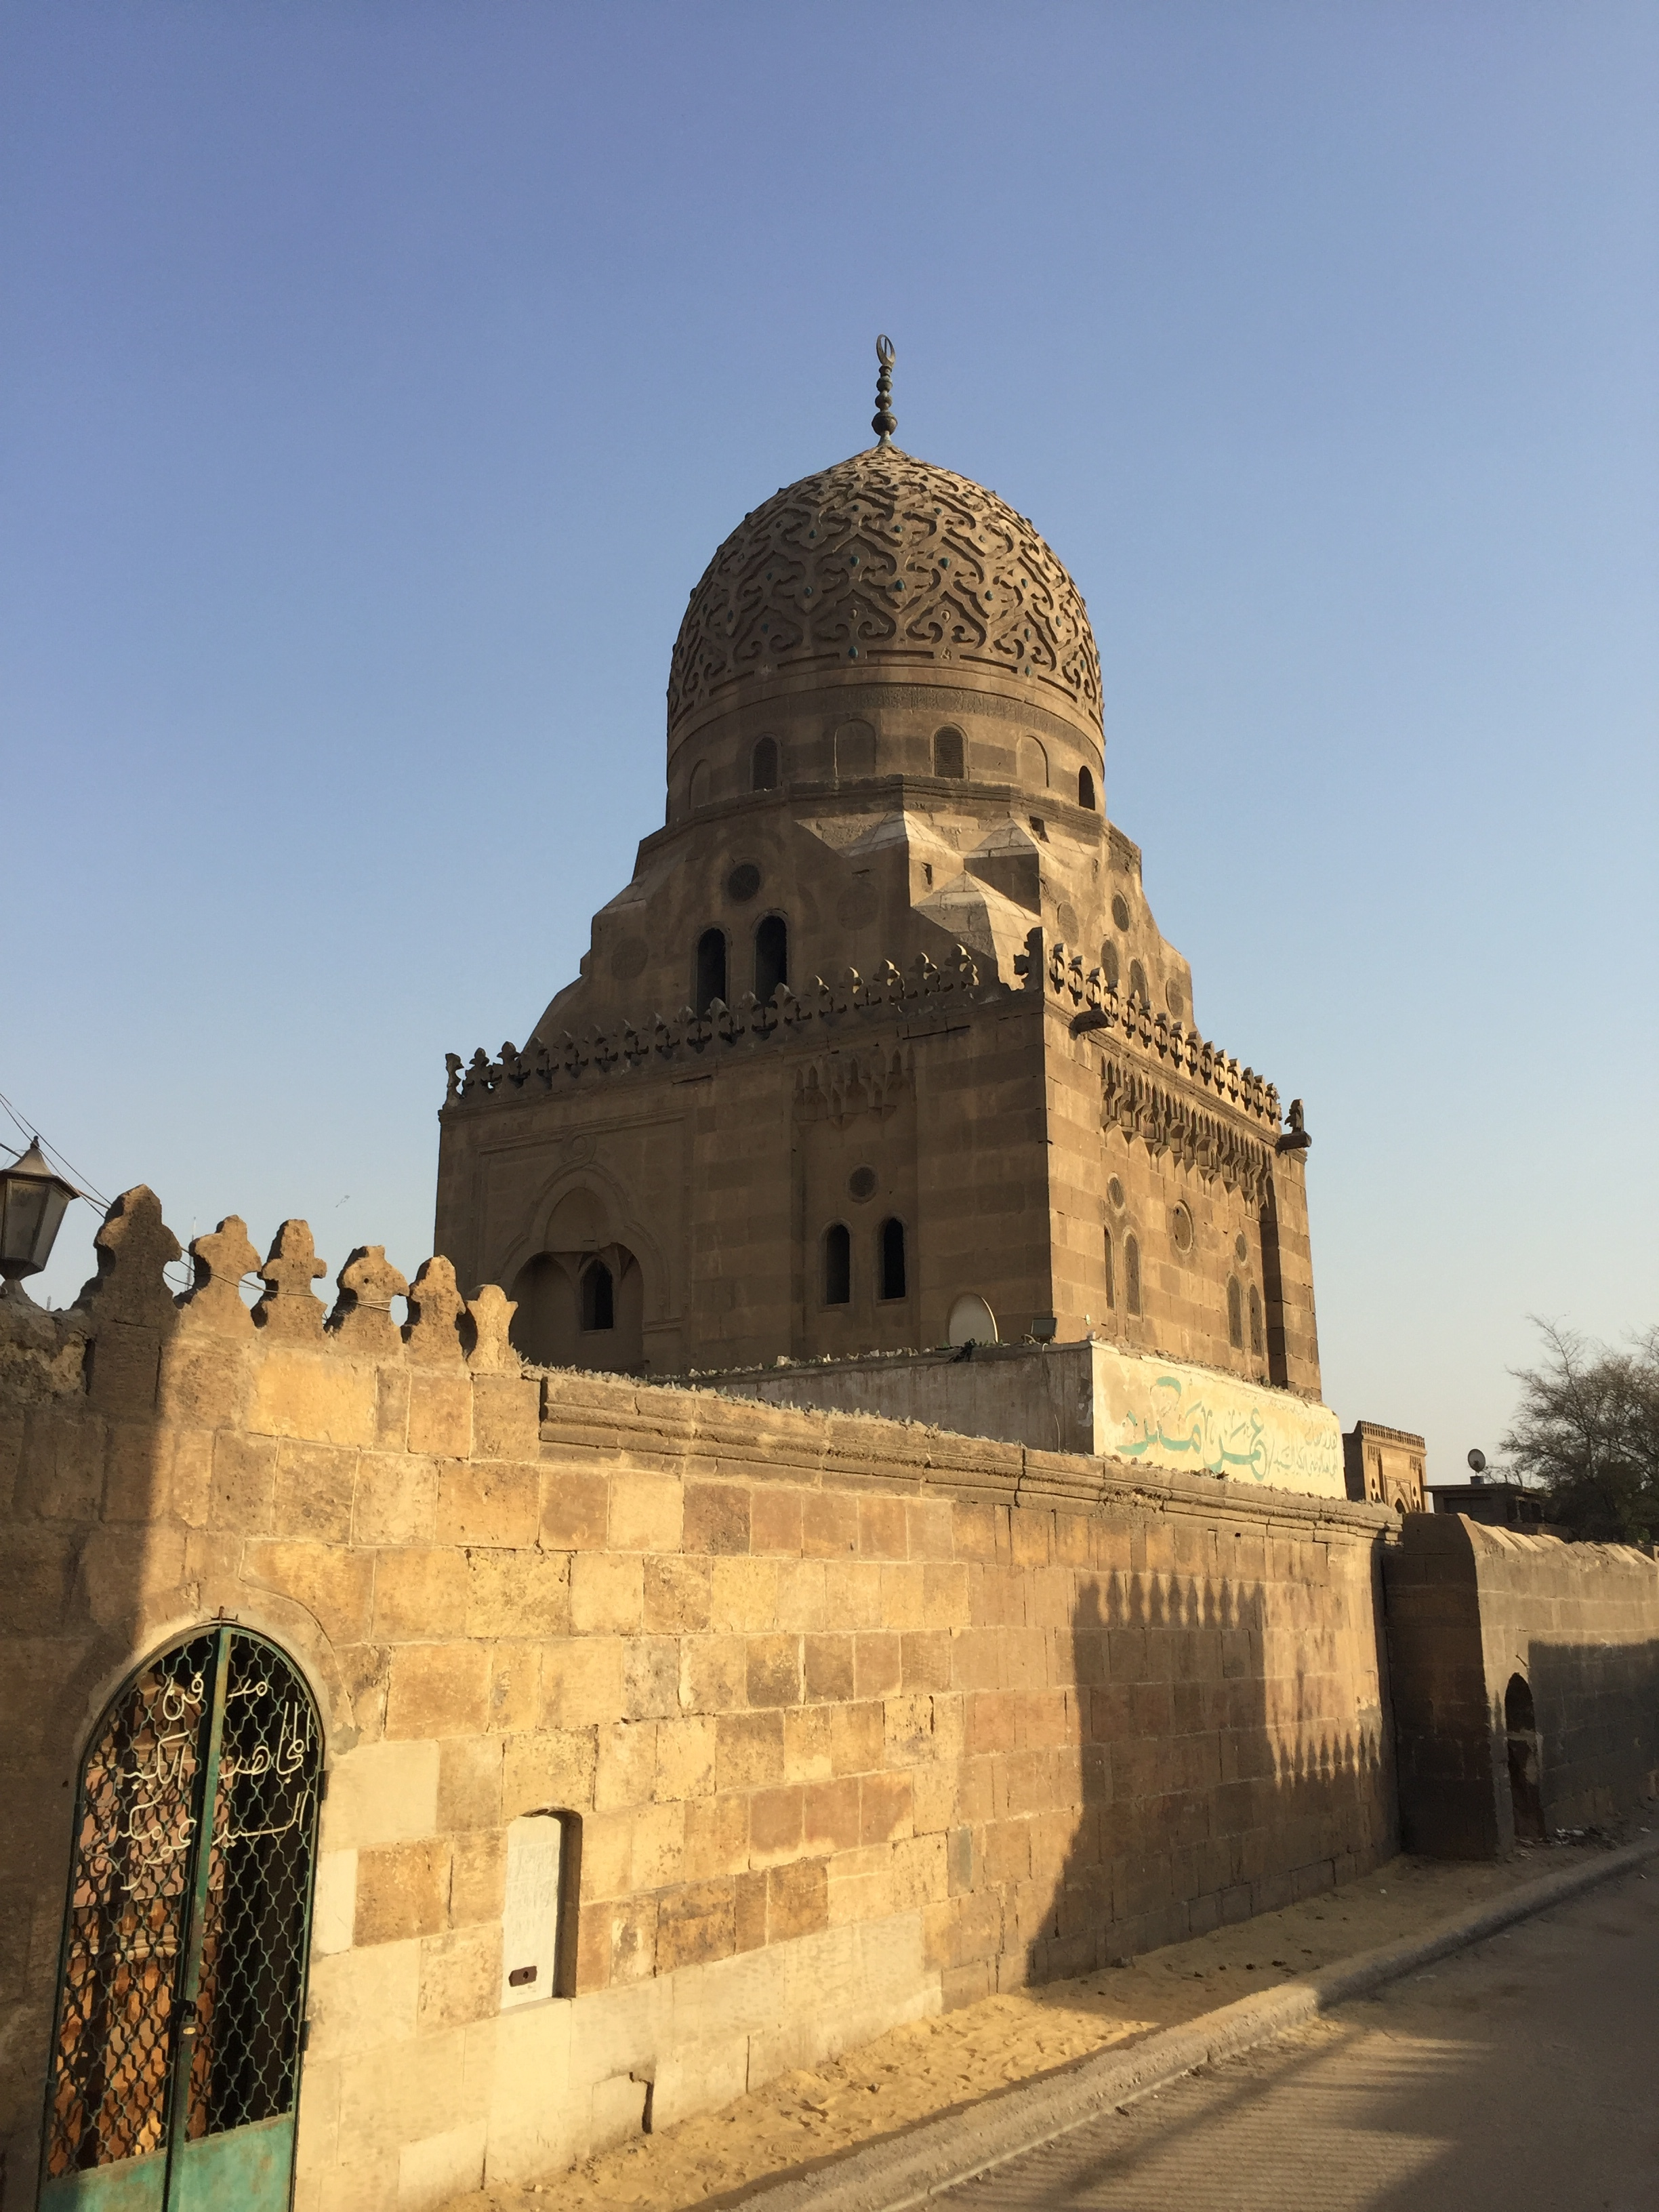 An ornate grave in Cairo's City of the Dead.